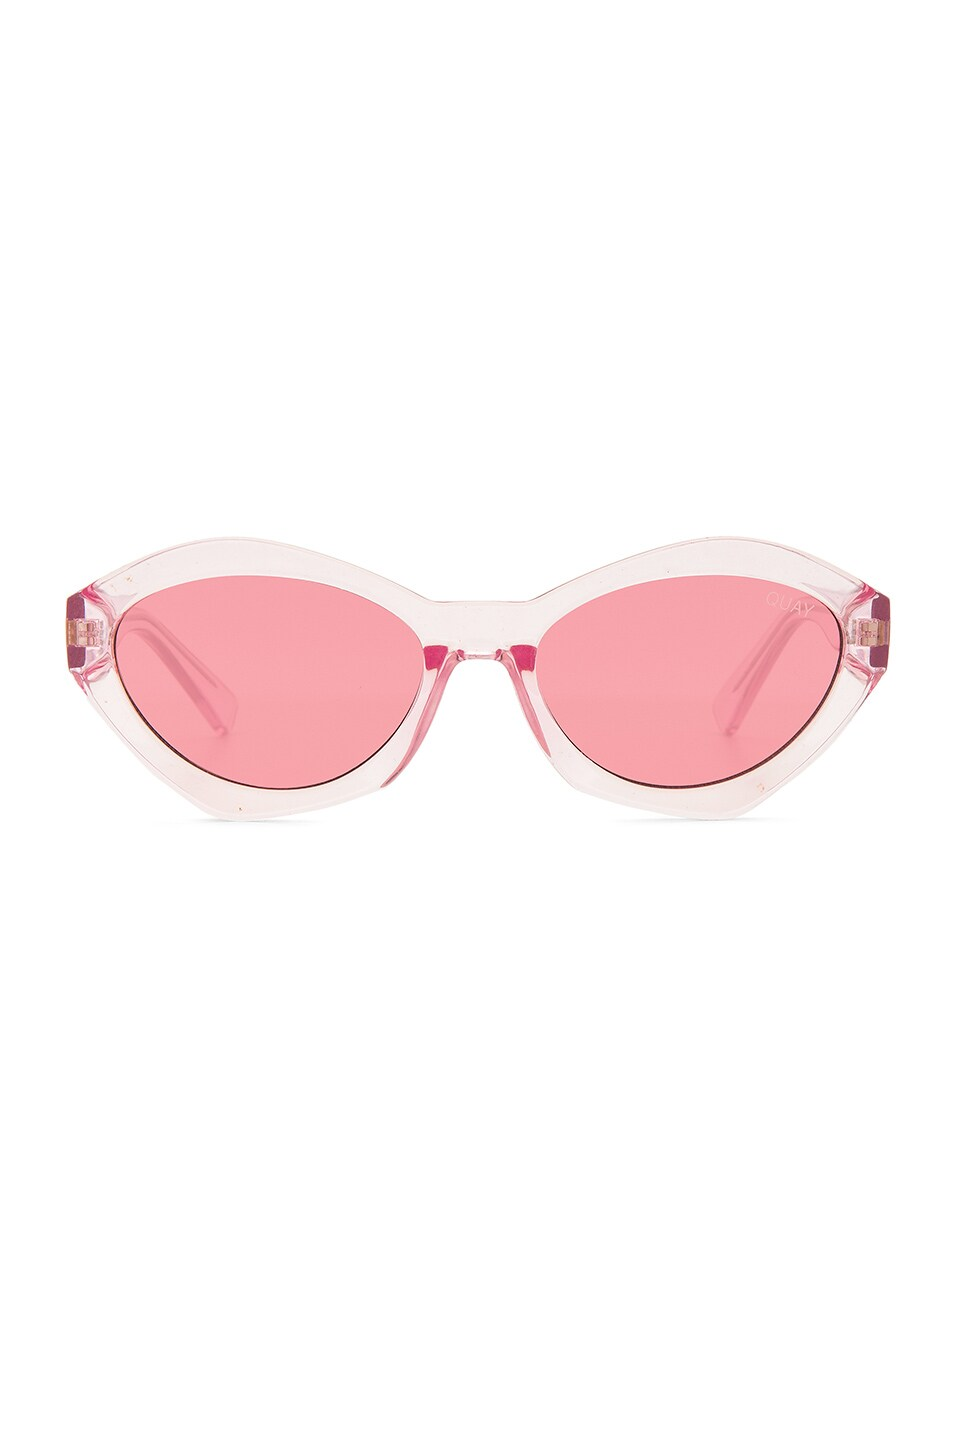 Quay As If! in Pink & Pink